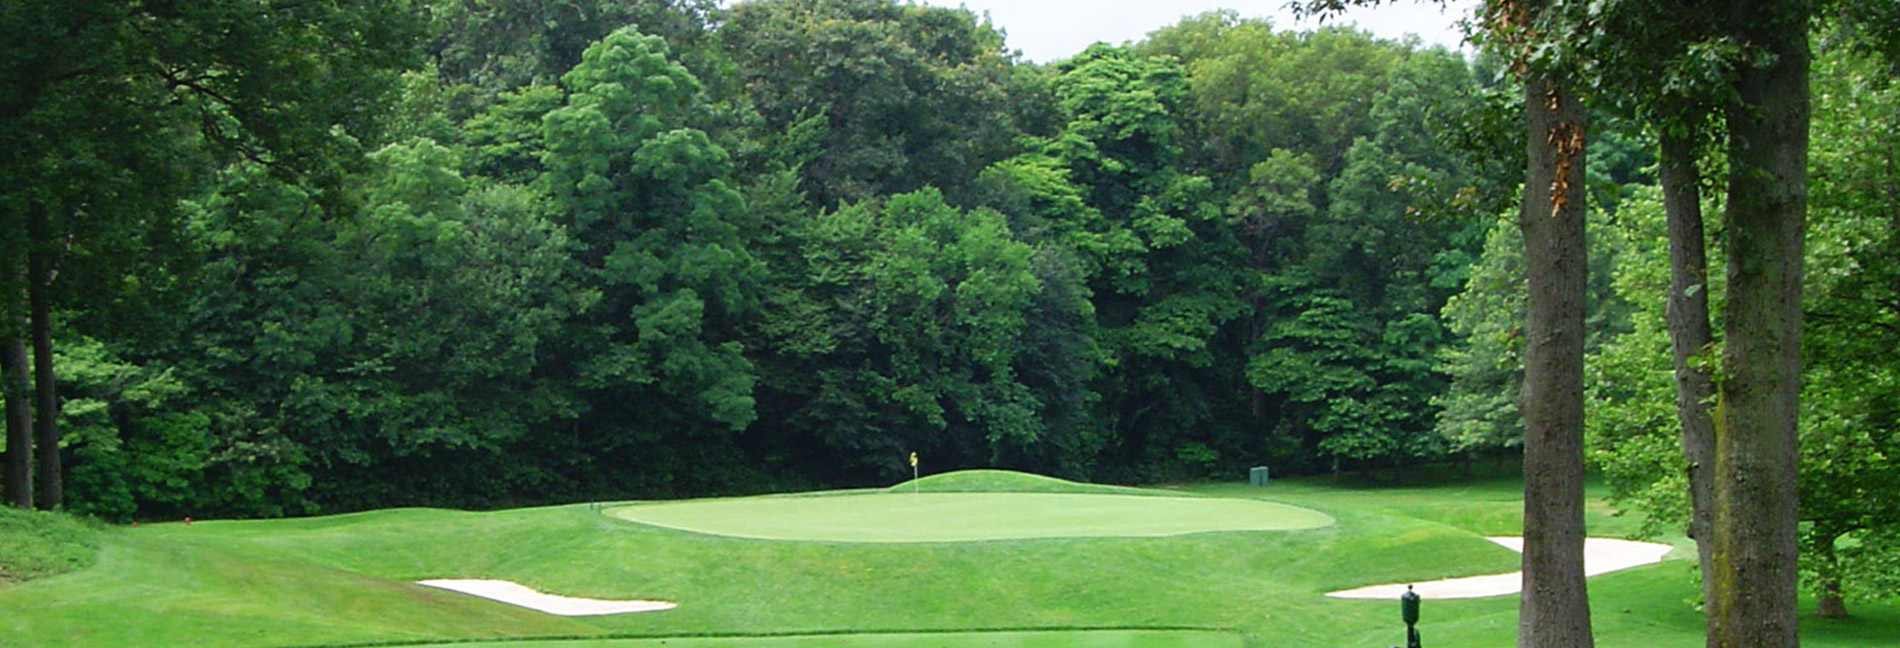 Image of Cold Spring Country Club's Golf Course